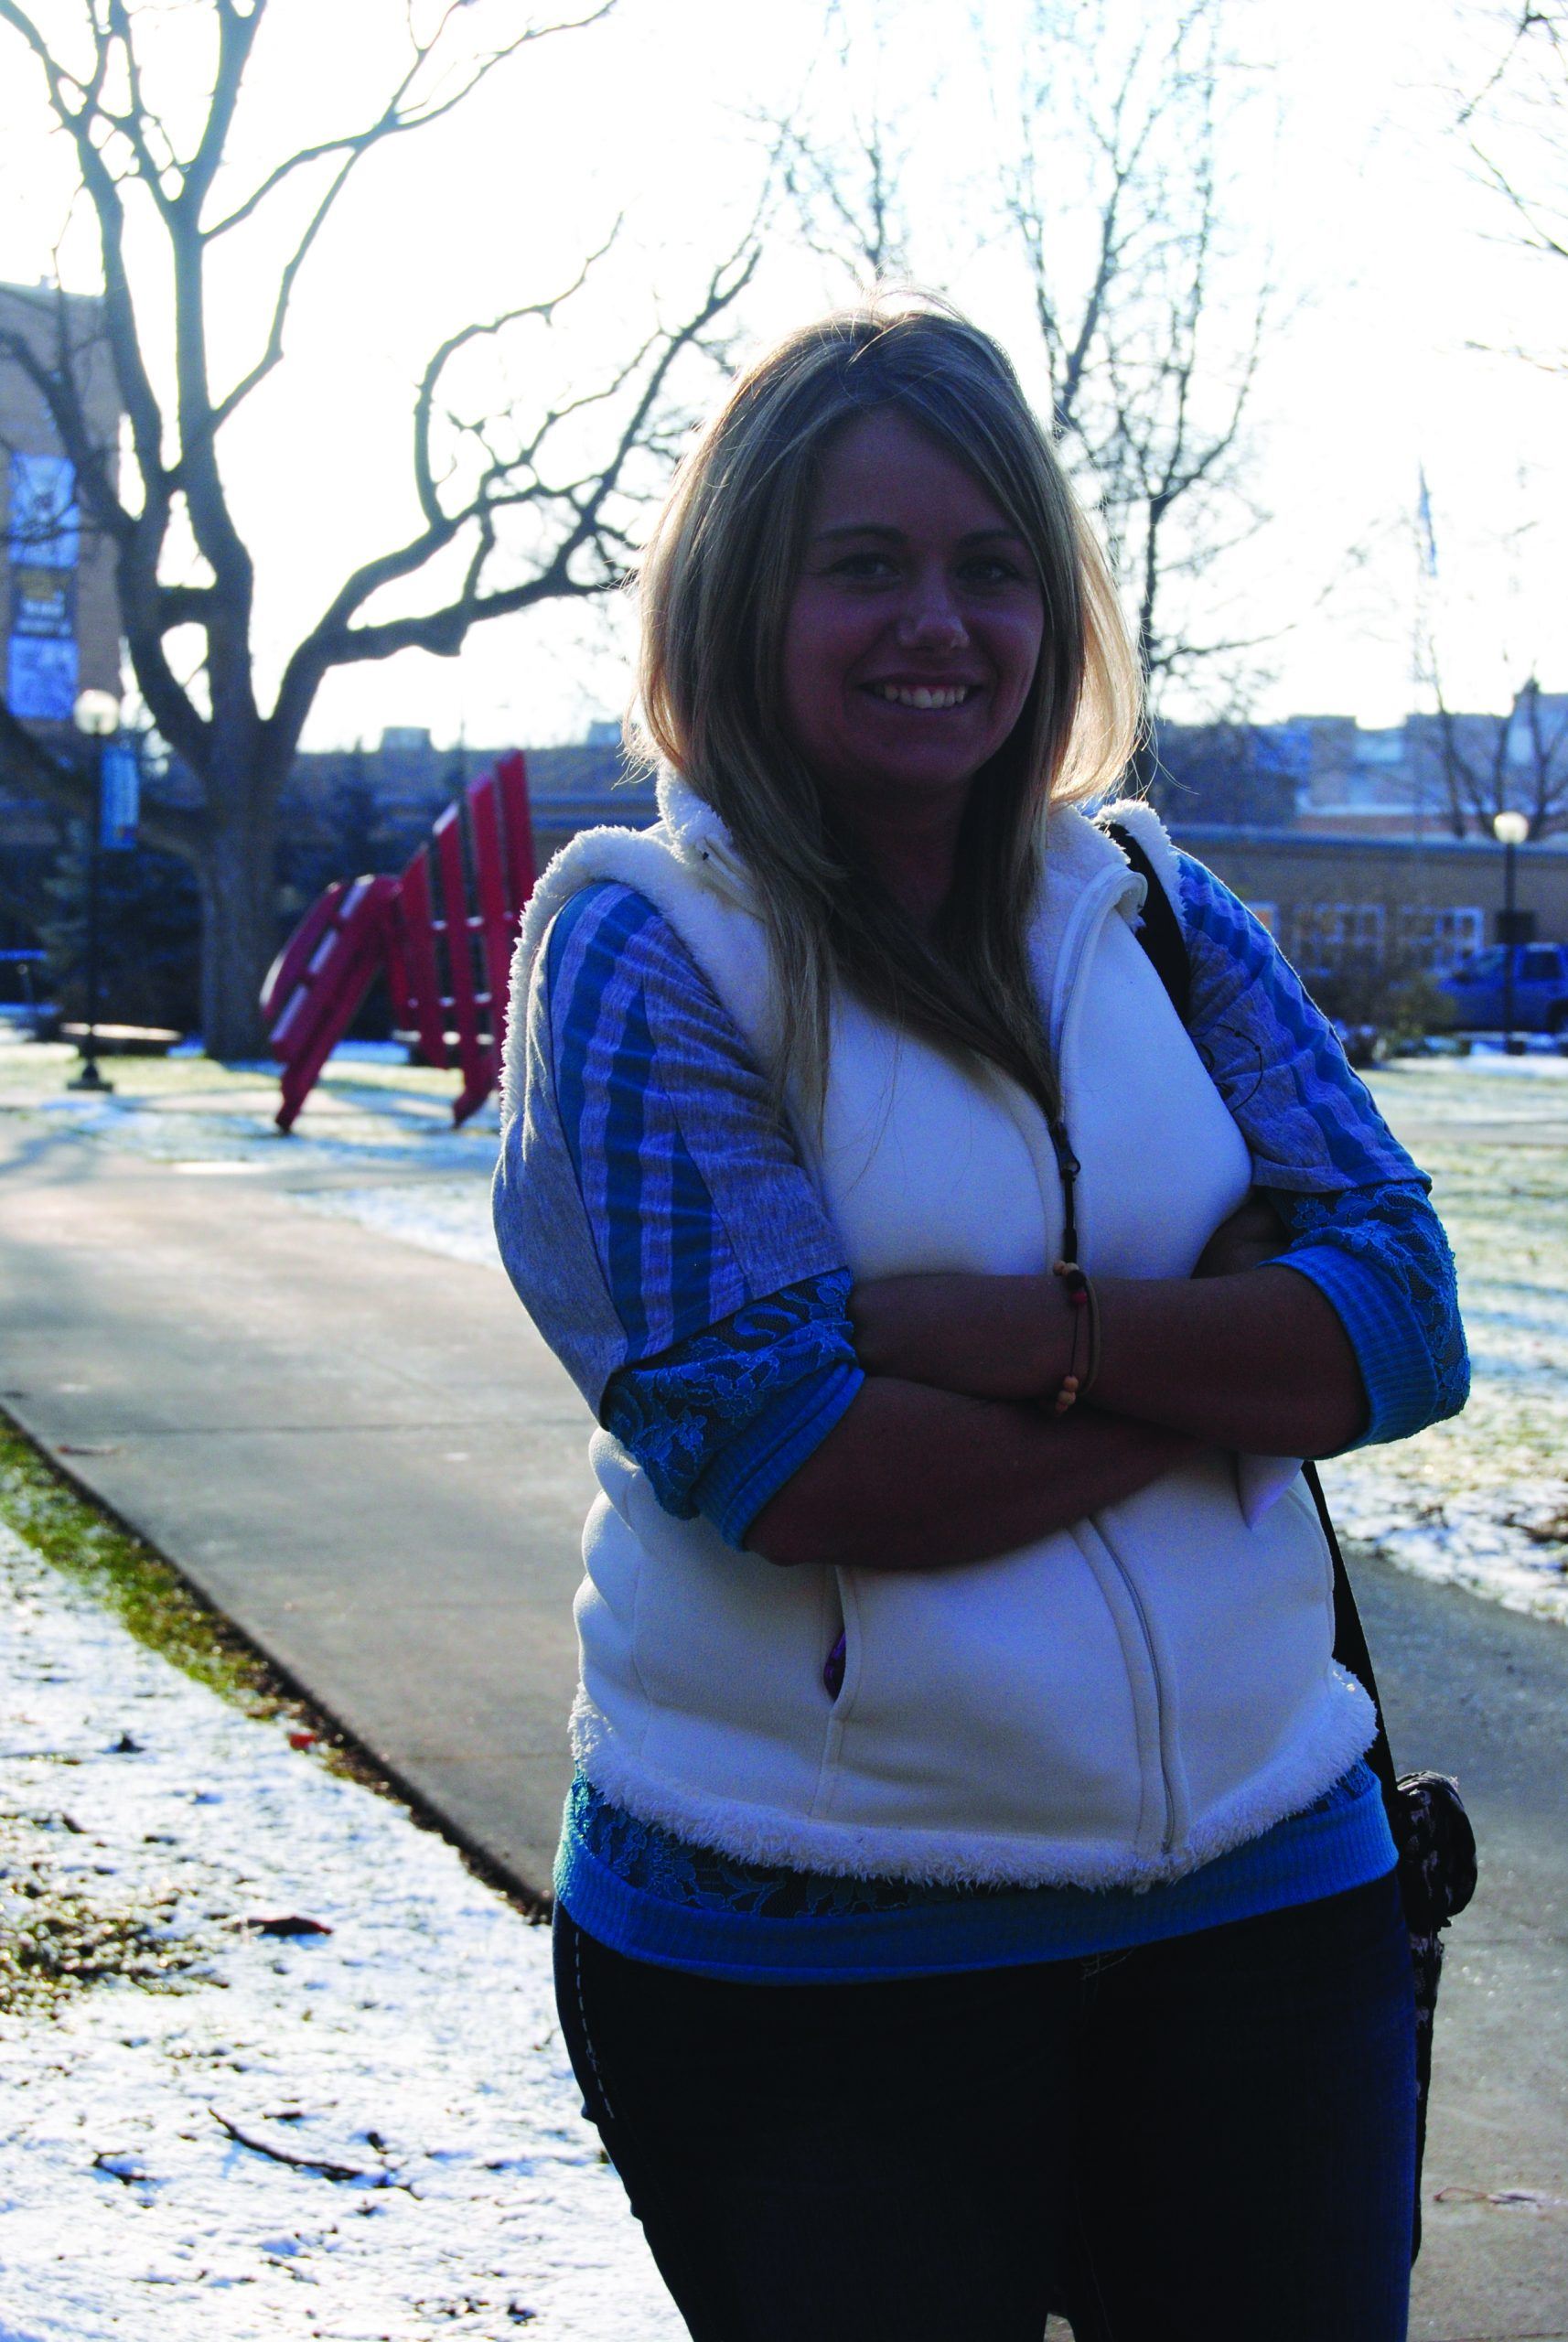 Naomi Kramer crosses her arms and smiles for the camera with the Goshen College campus as her backdrop